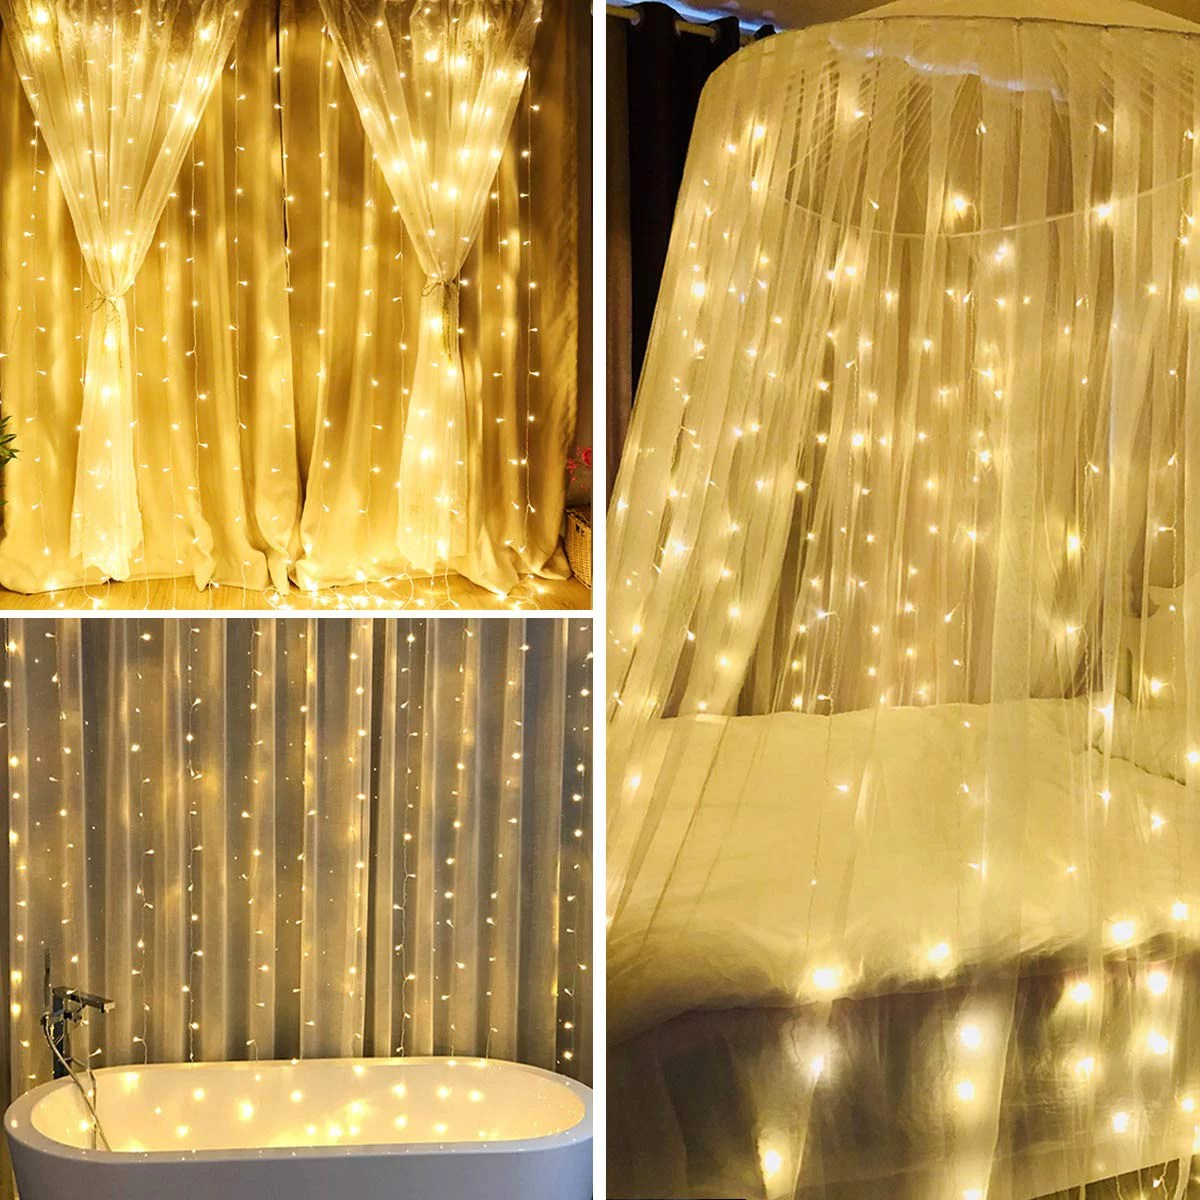 walfront 600 leds window curtain lights 13ftx6 5ft 8 modes fairy string light christmas wedding party home garden bedroom curtain wall decorative